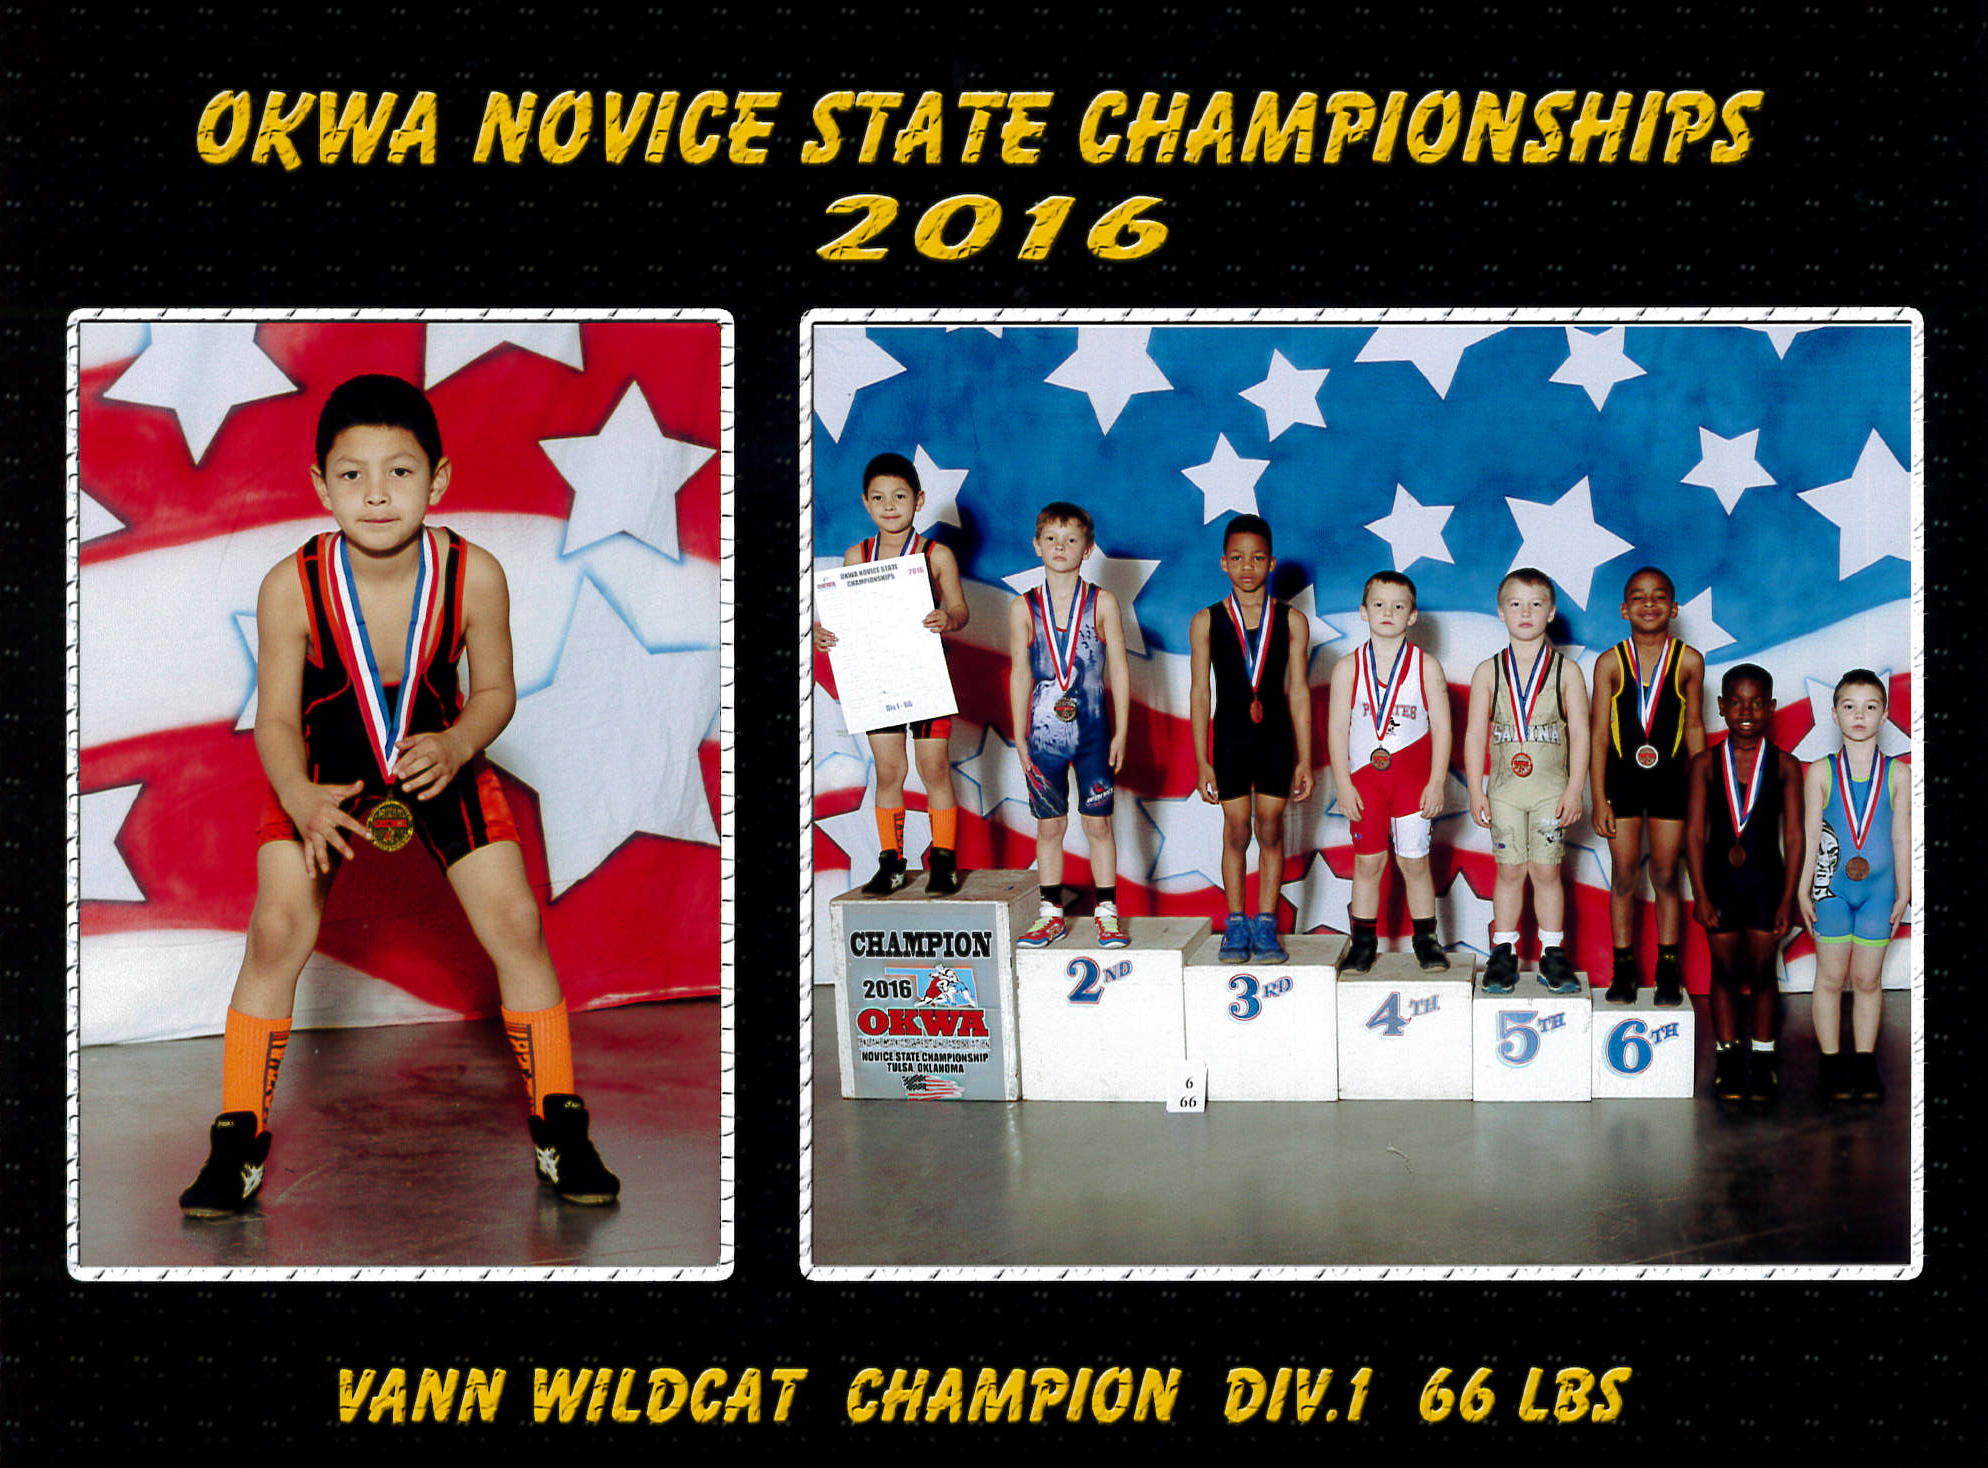 Vann Wildcat is the 2016 OKWA Novice State Champion